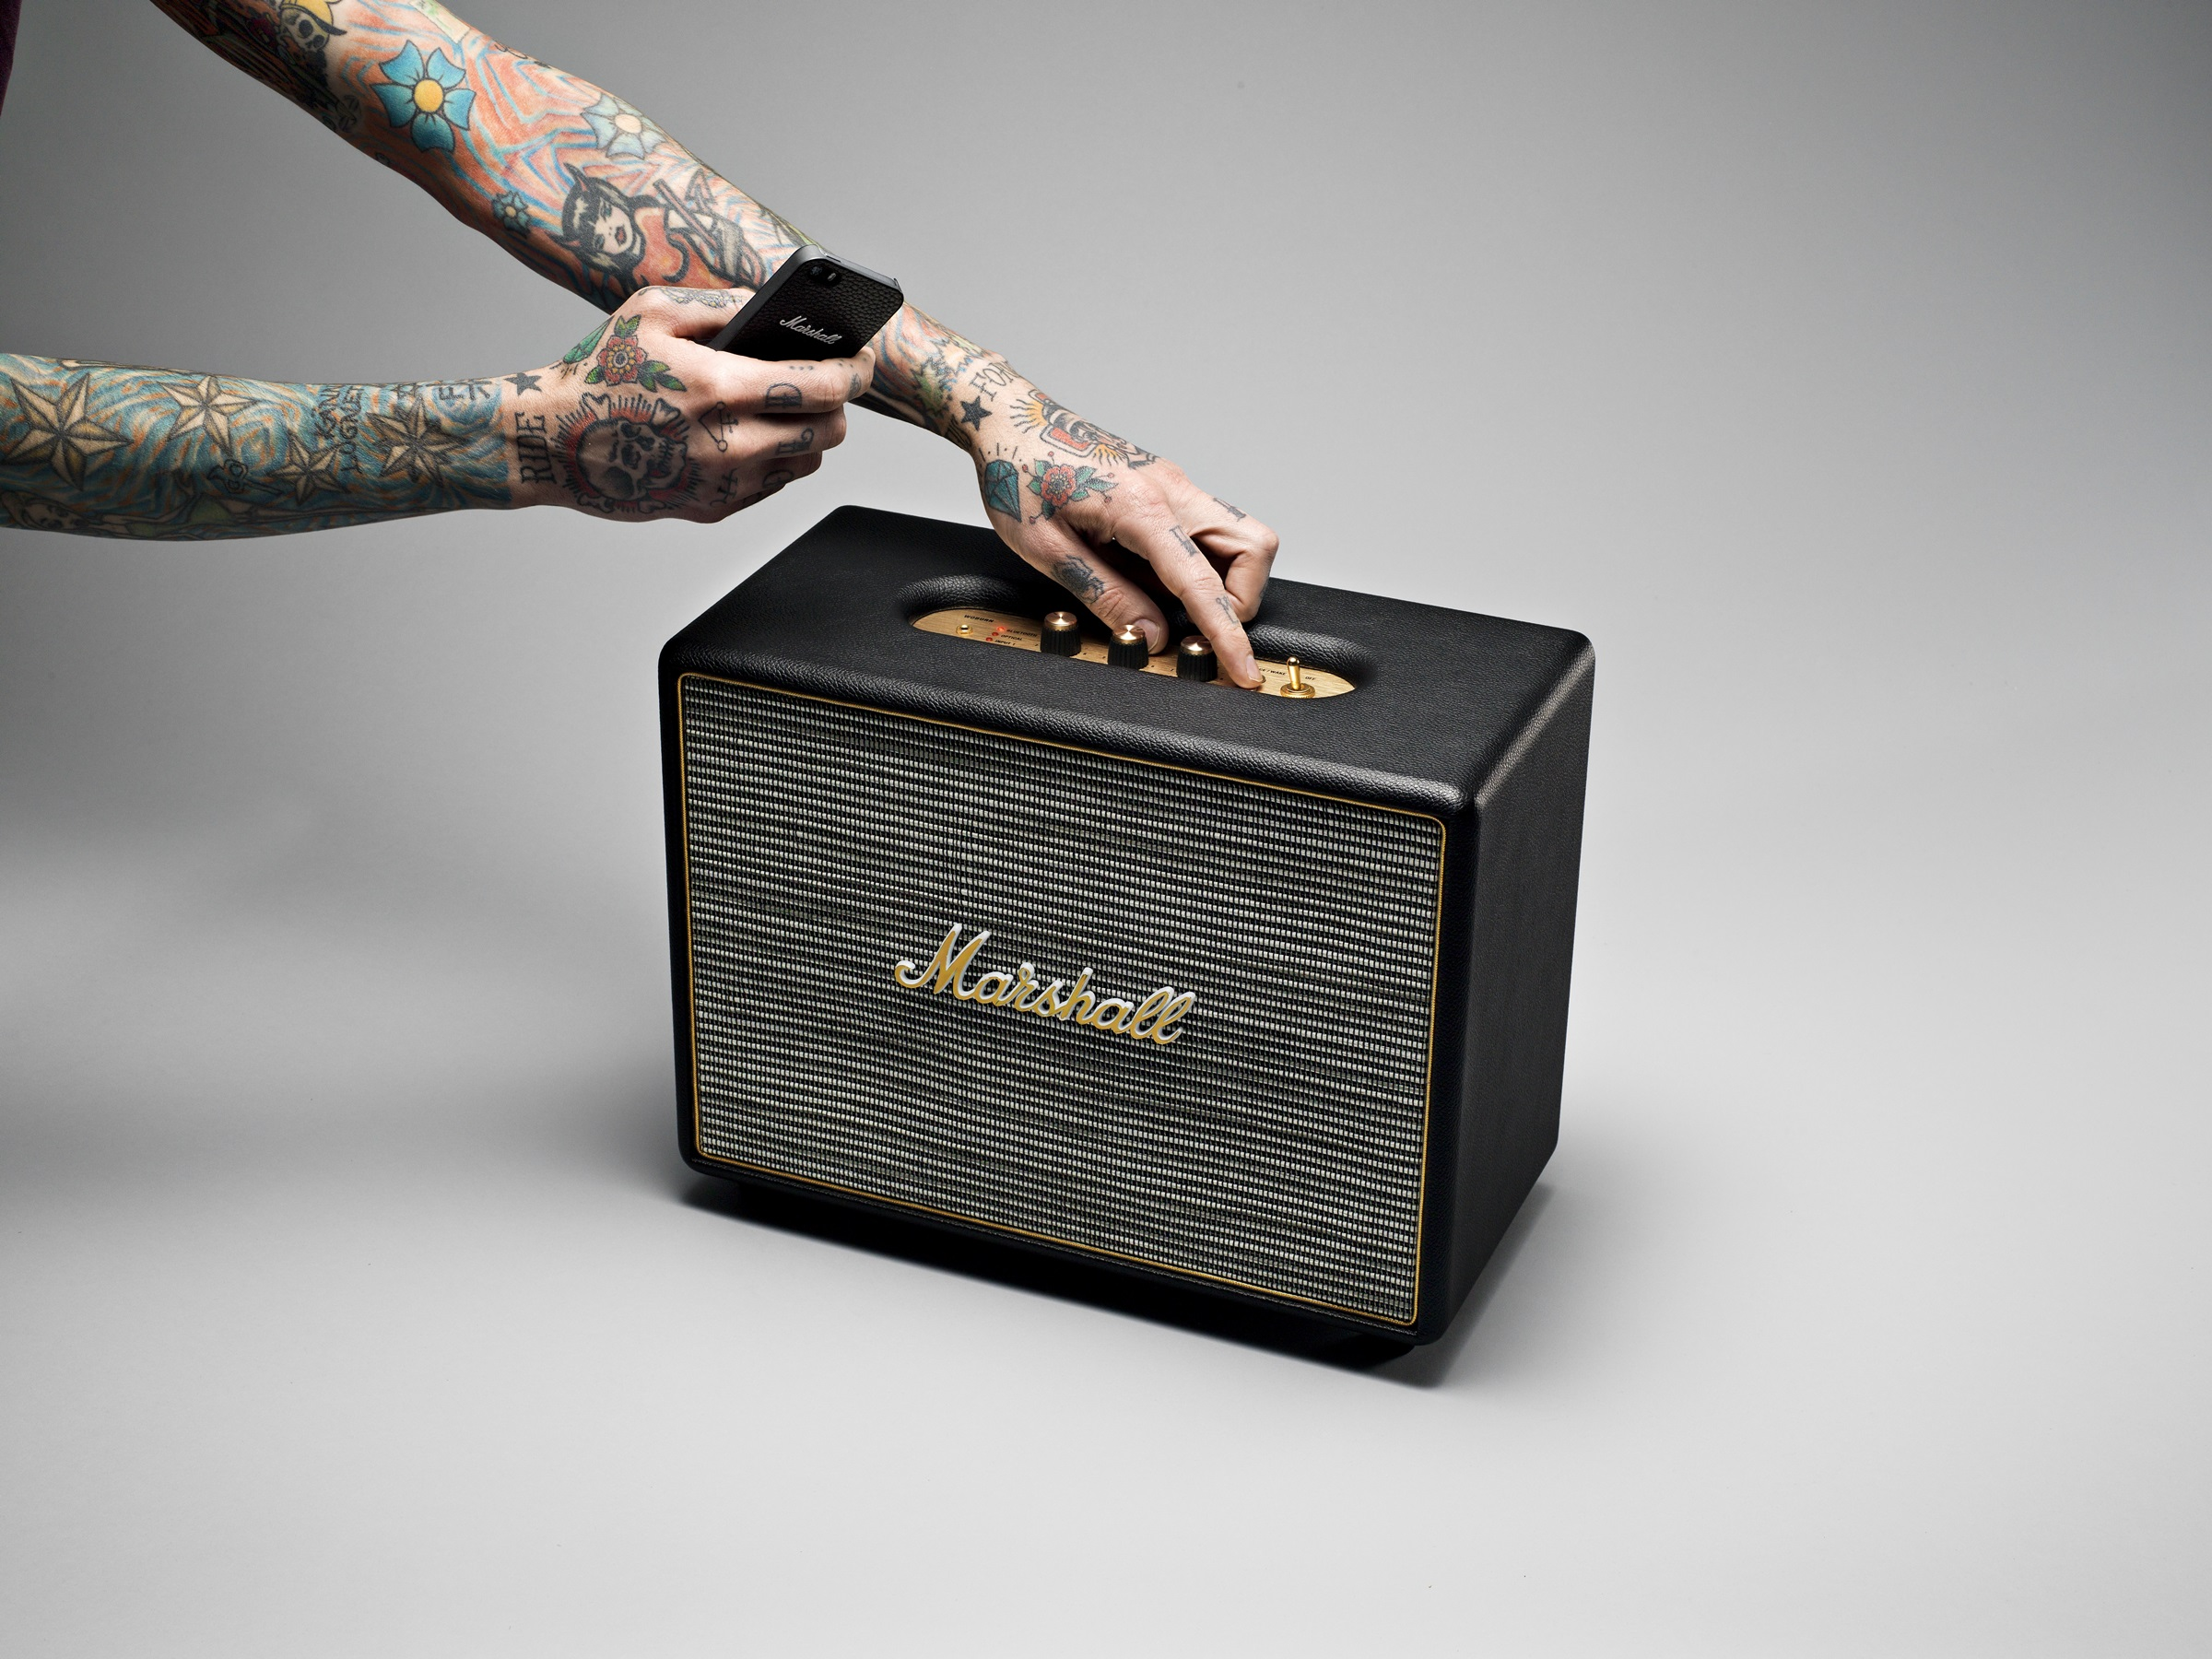 MARSHALL - ACCESSORI AUDIO - 7340055309639